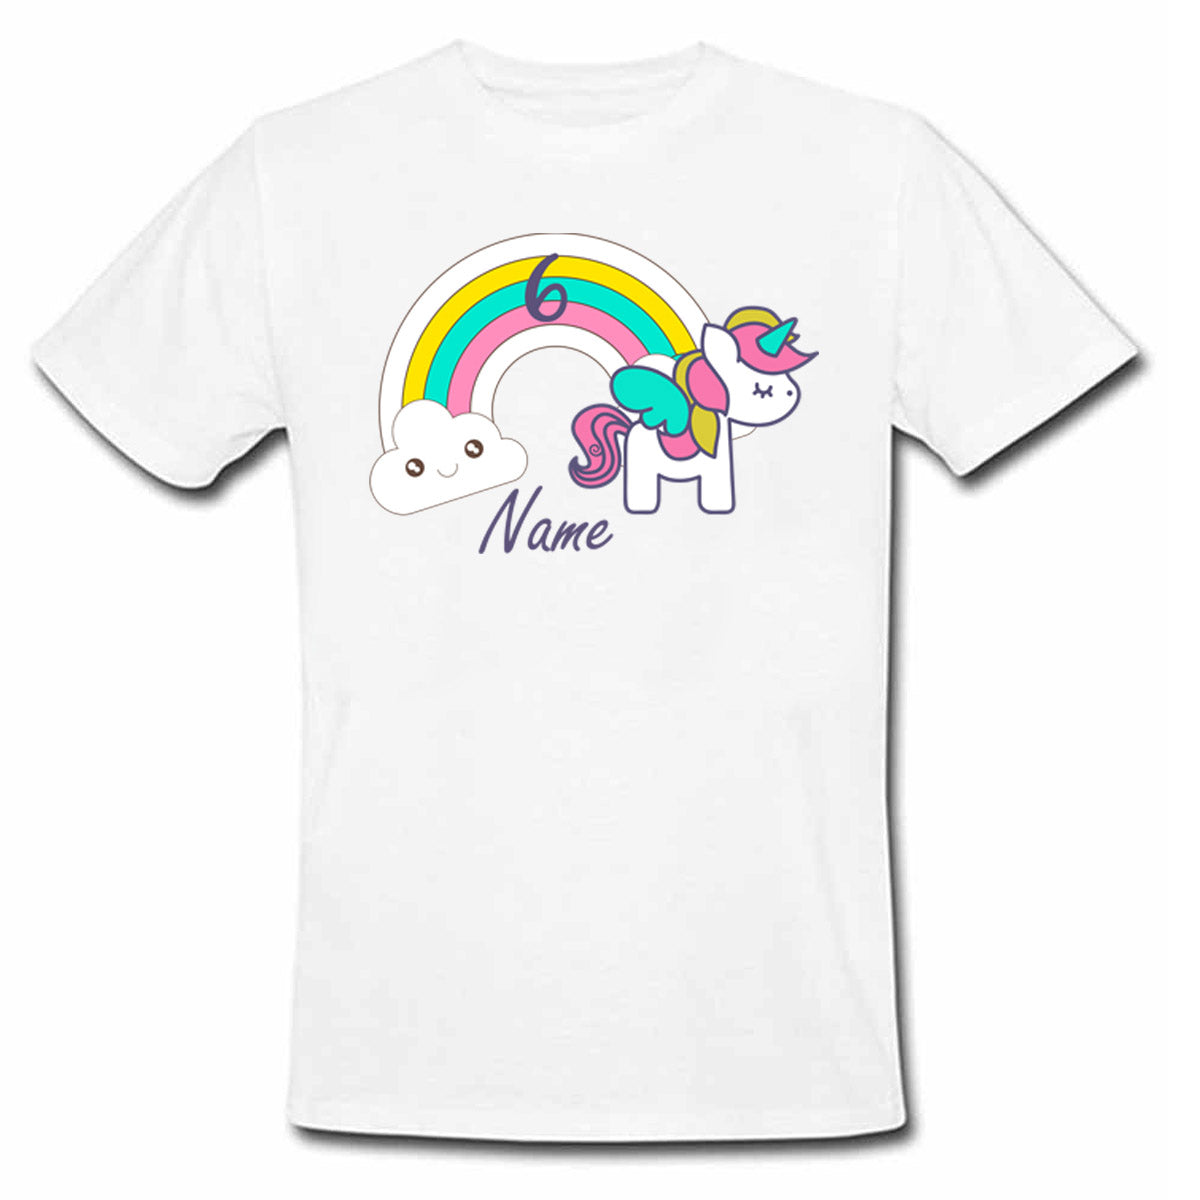 Sprinklecart Custom Name and Age Printed Unicorn Poly-Cotton Kids T Shirt (White)